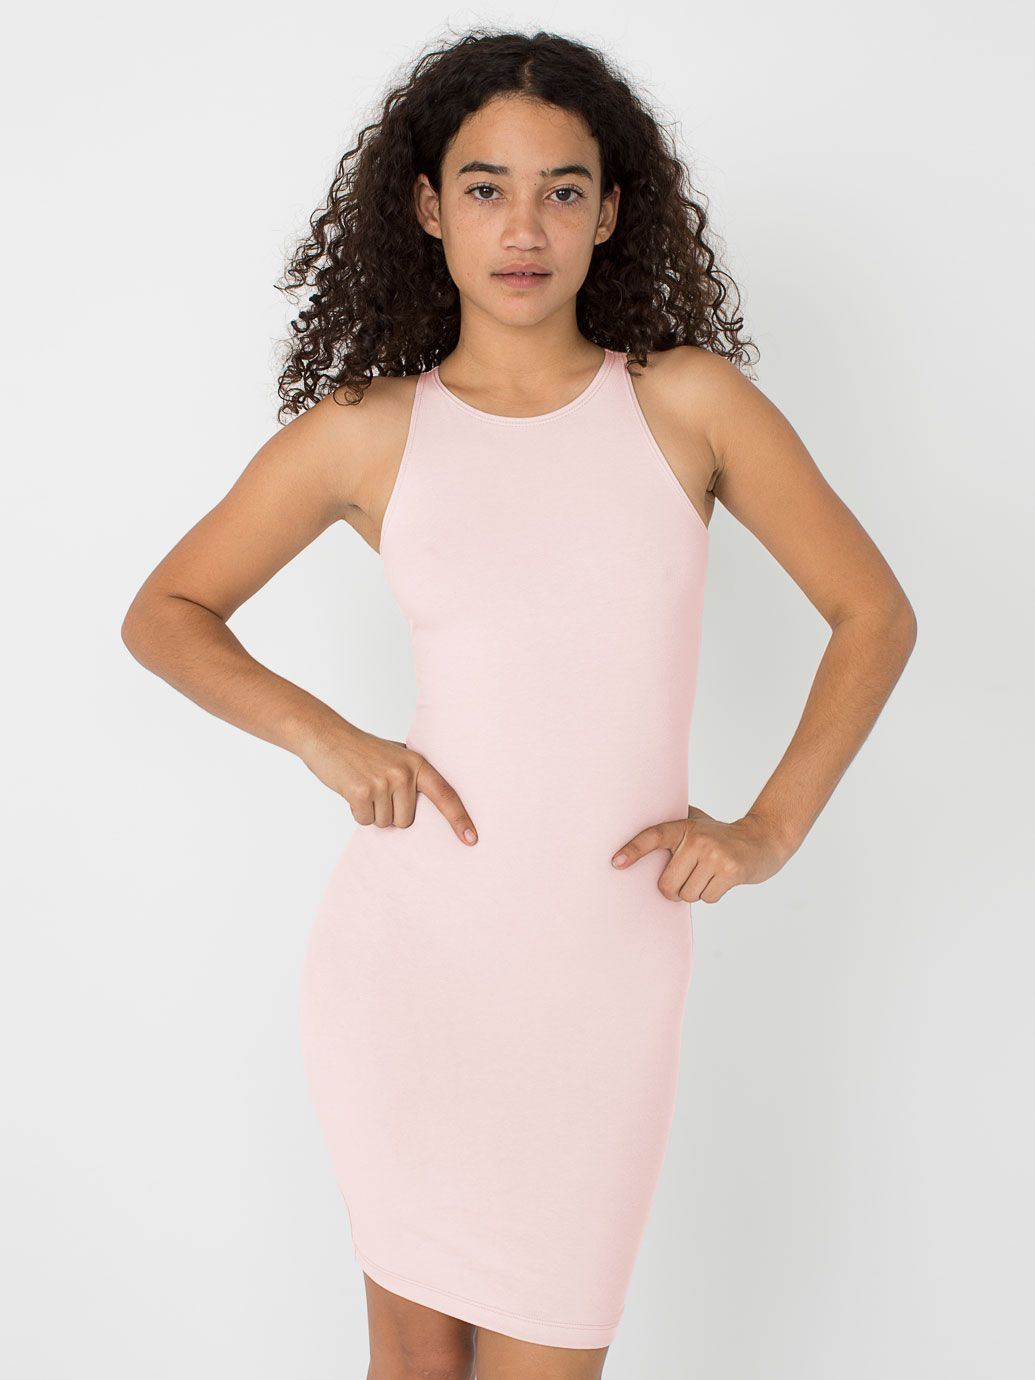 2357a37e0da2 rsa8383 - Cotton Spandex Sleeveless Mini Dress - 118178 rsa8383 by American  Apparel